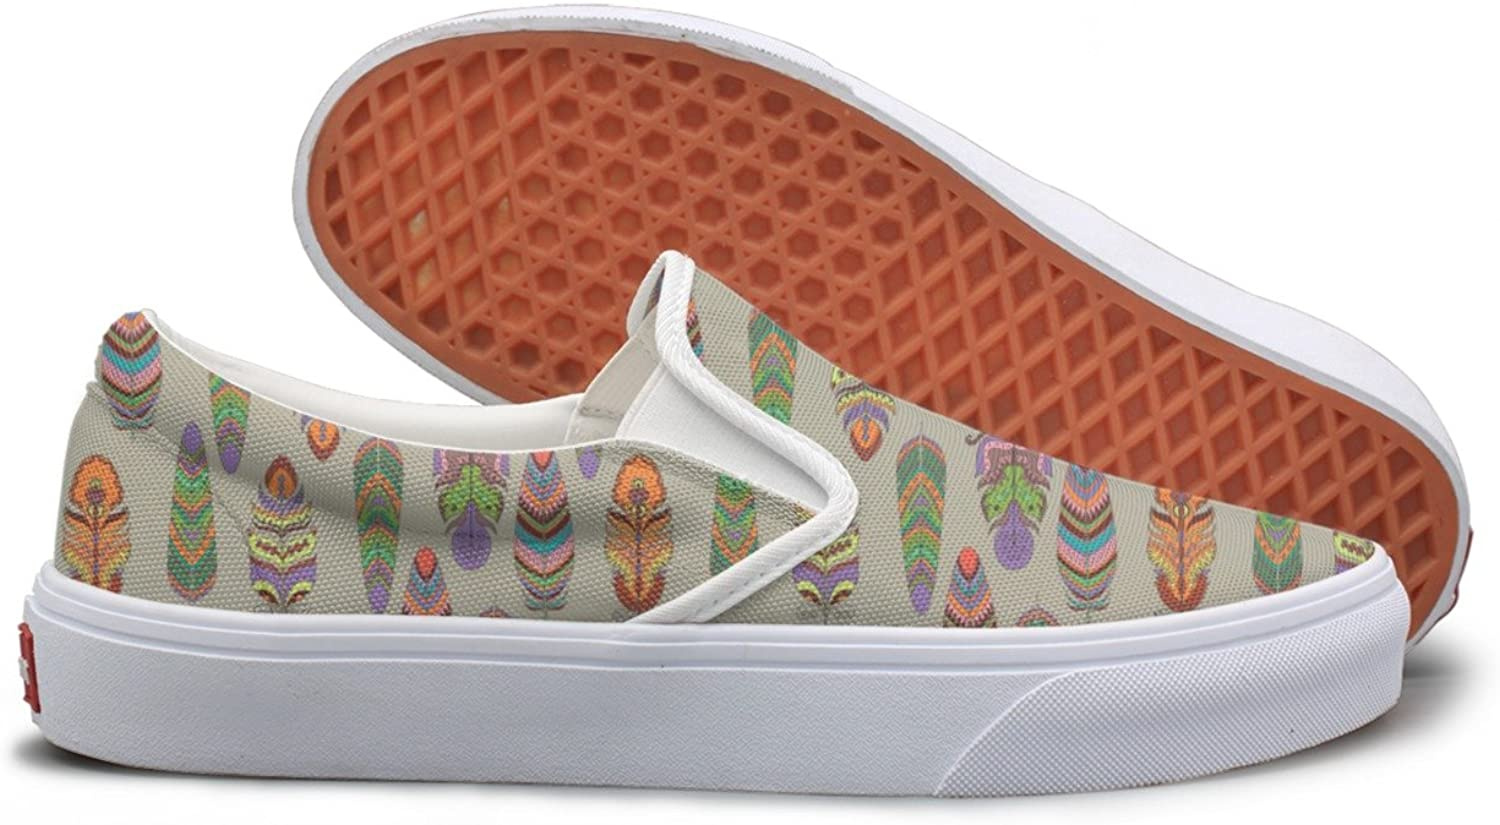 The Feathers Of African Tribes Canvas Sneakers Women